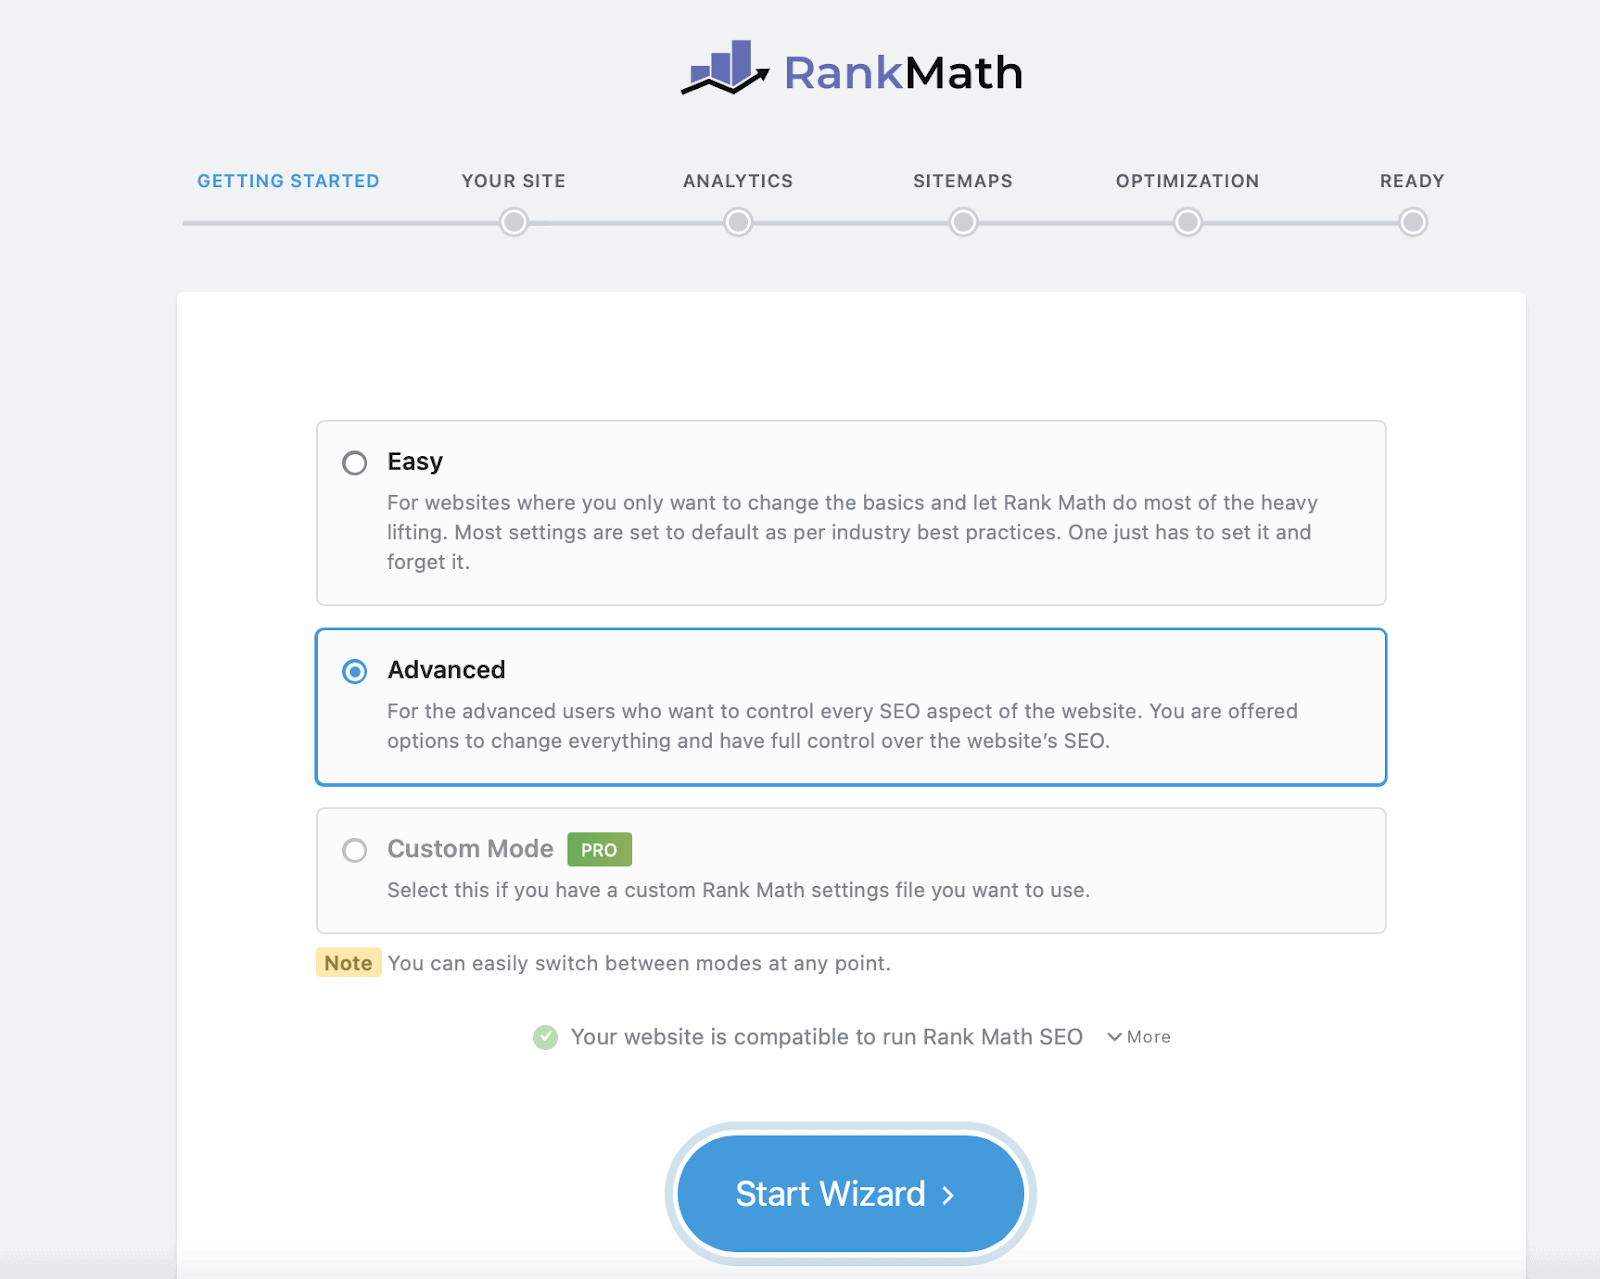 Features - easy to follow - Rankmath